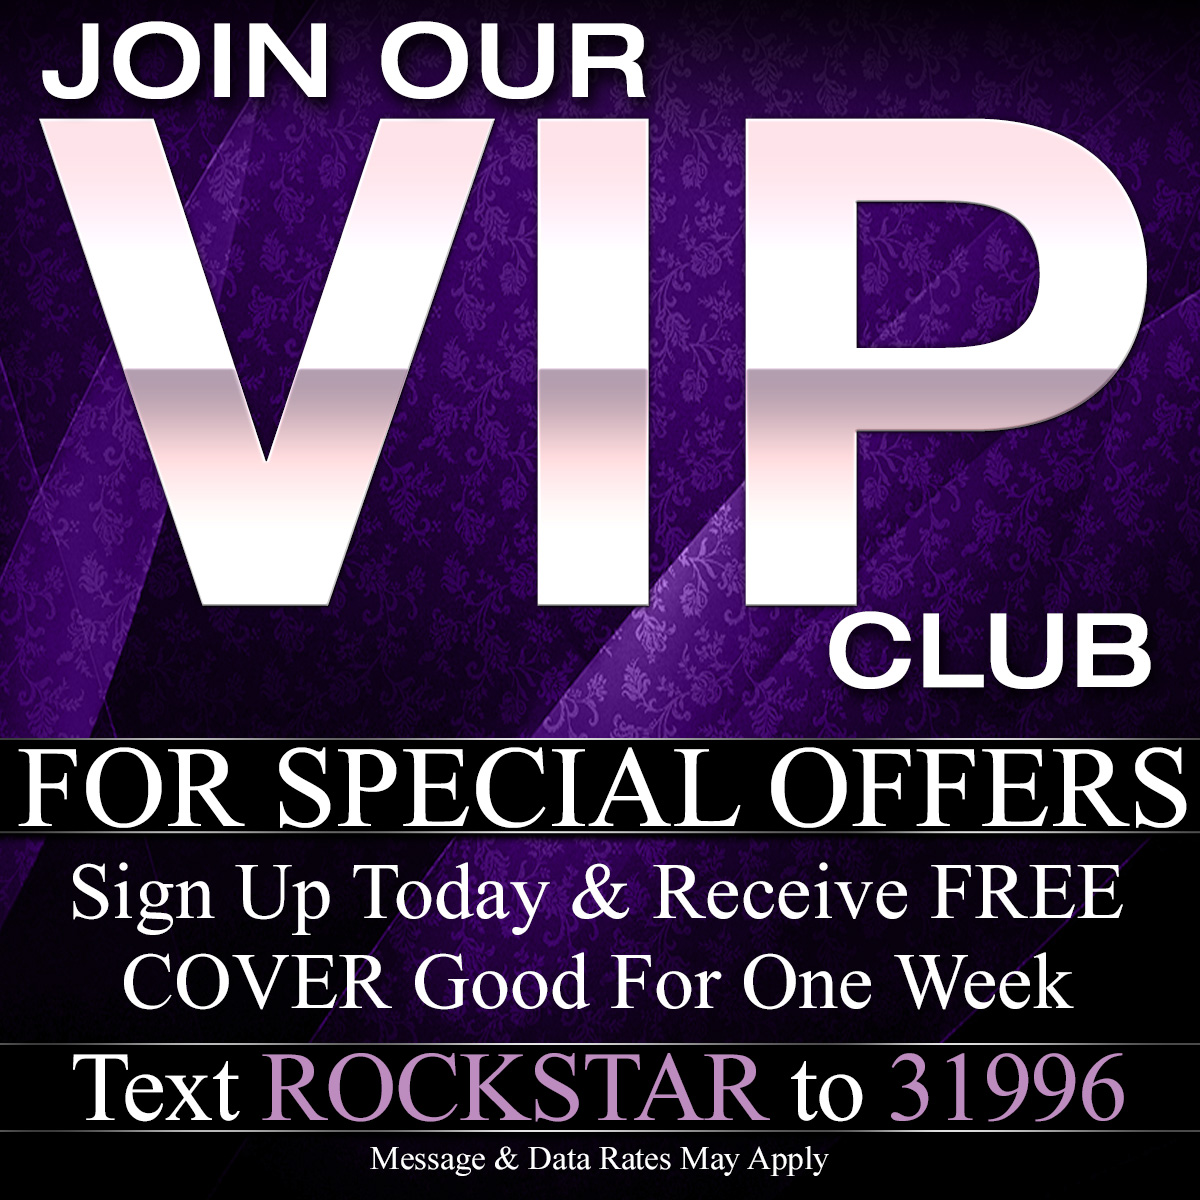 Text Rockstar To 31996 To Join Our VIP Mobile Membership